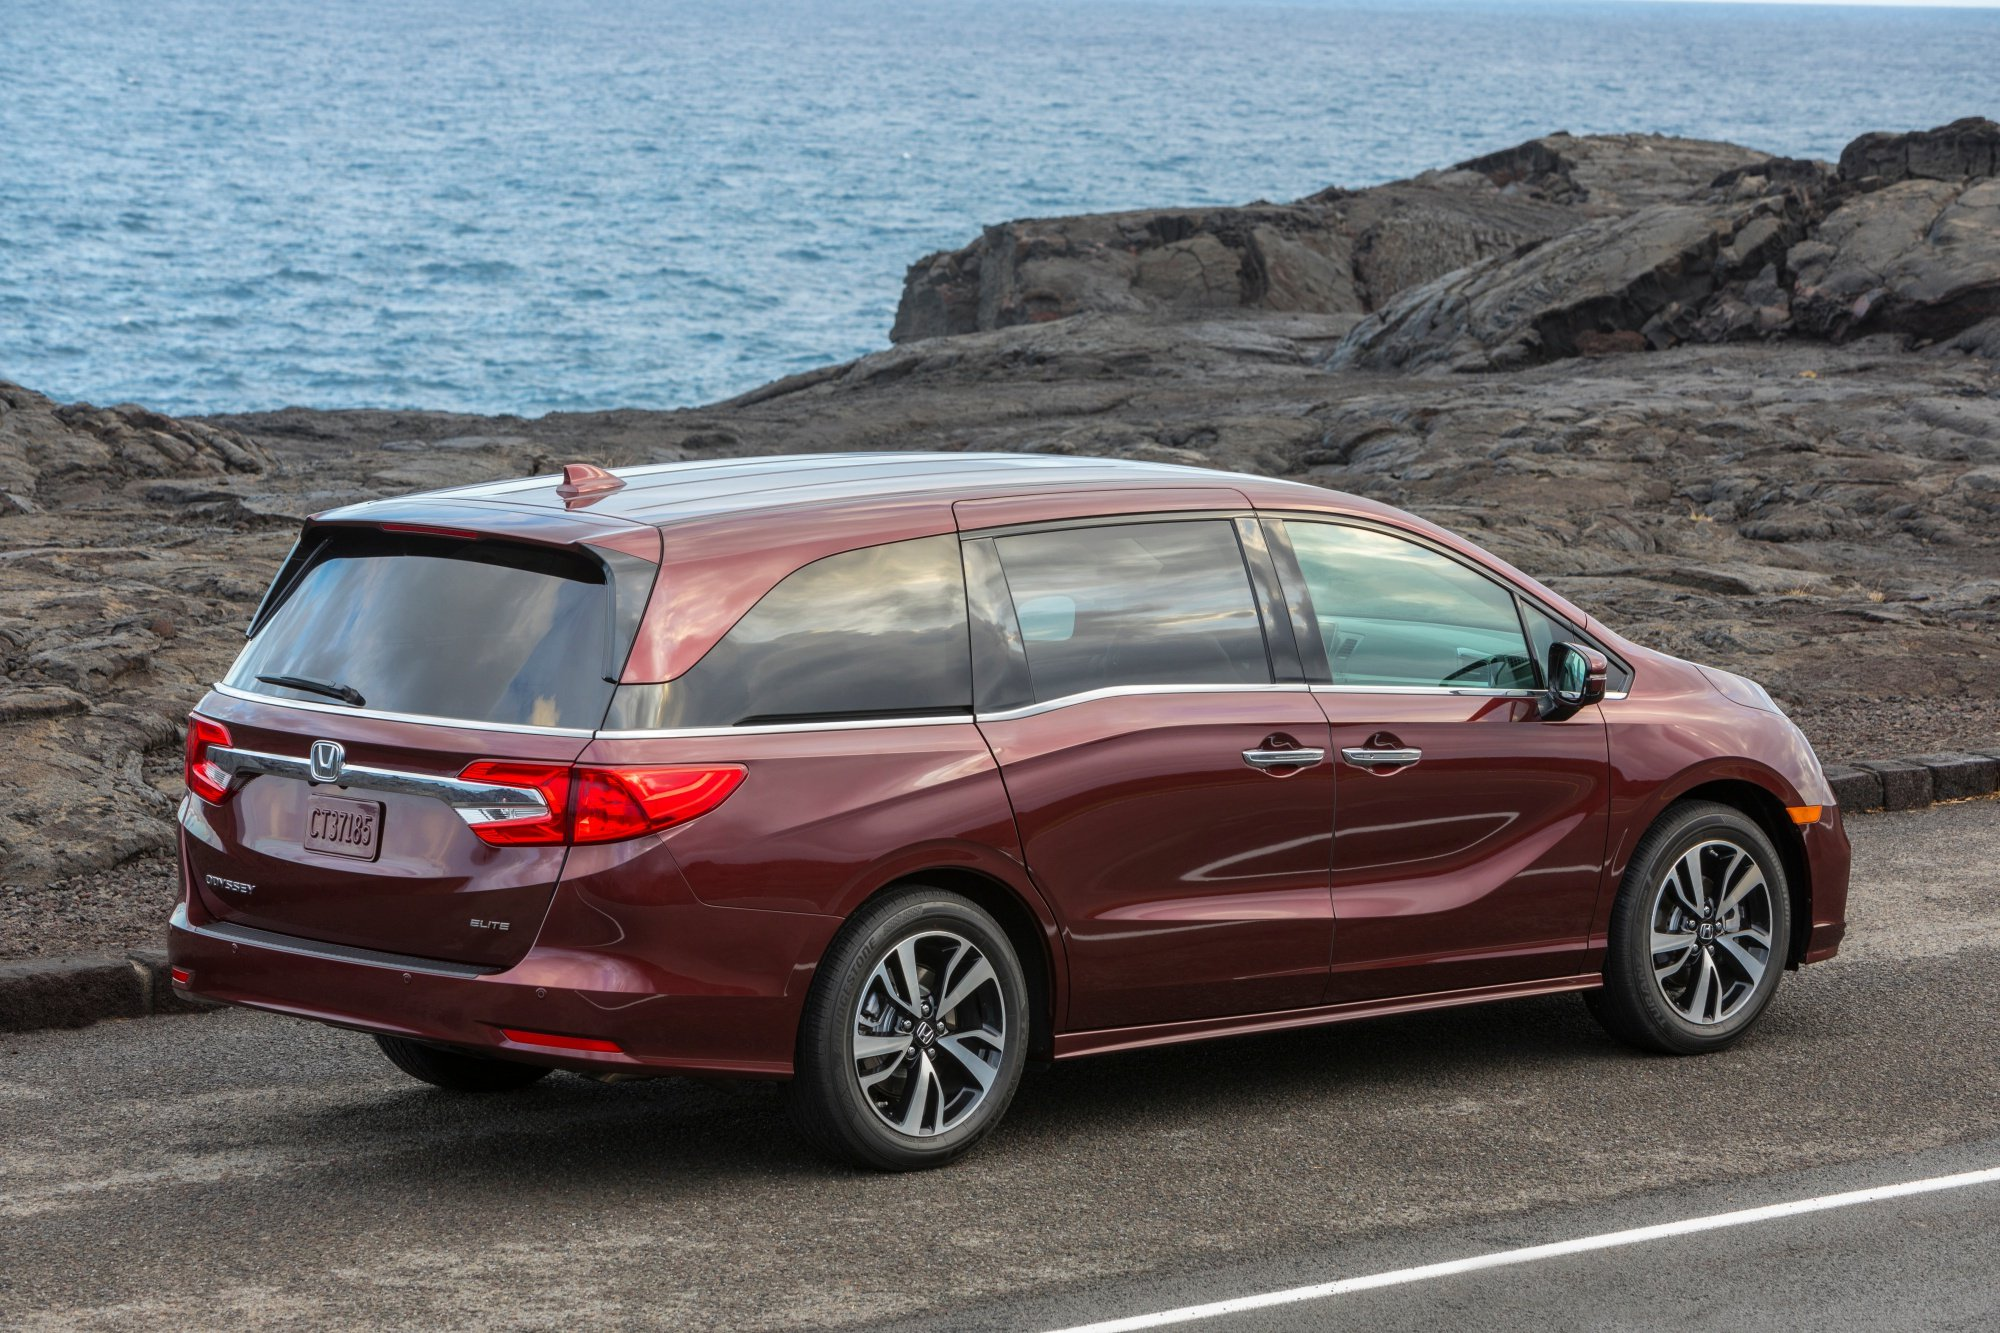 drive designed long trips epic for minivan haul connected reports the consumer vs review comfort minivans odyssey price road first is honda